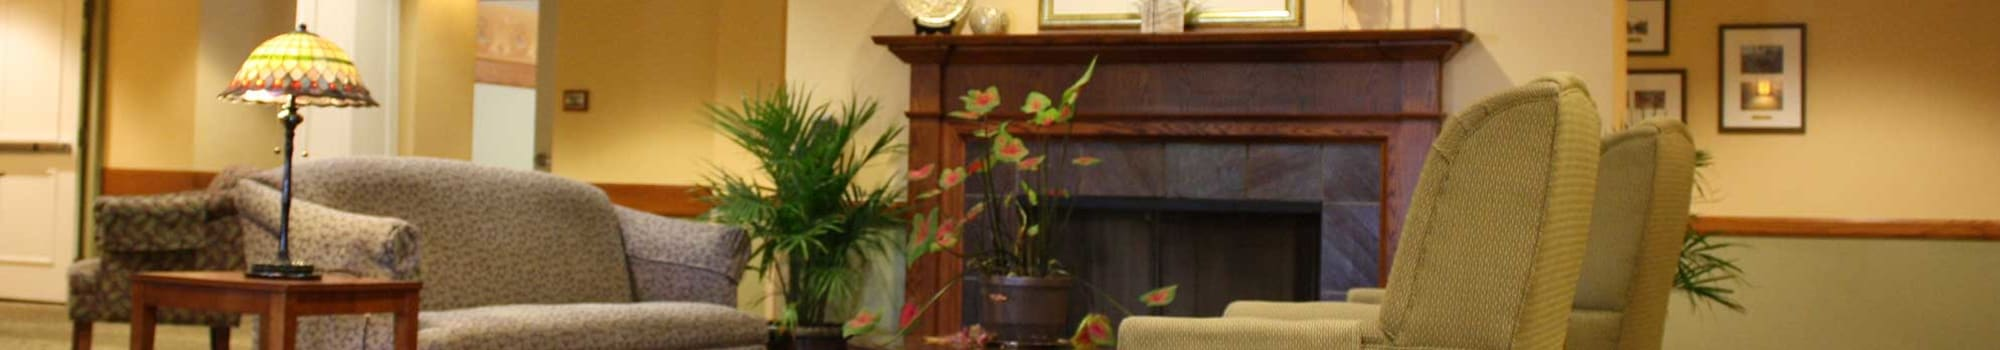 Senior living options in Joliet, IL